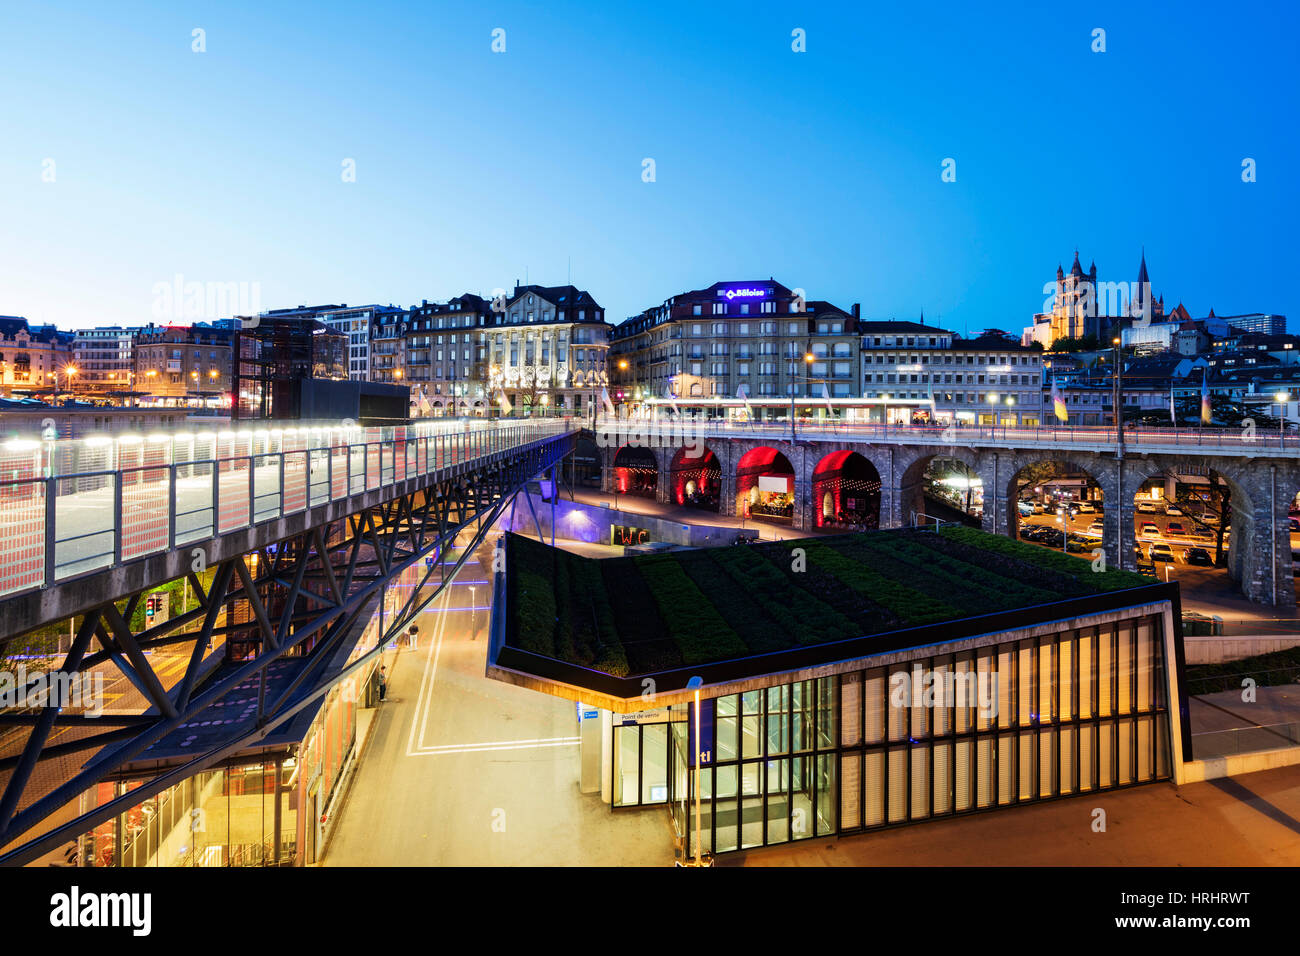 City centre viaduct, Lausanne, Vaud, Switzerland - Stock Image